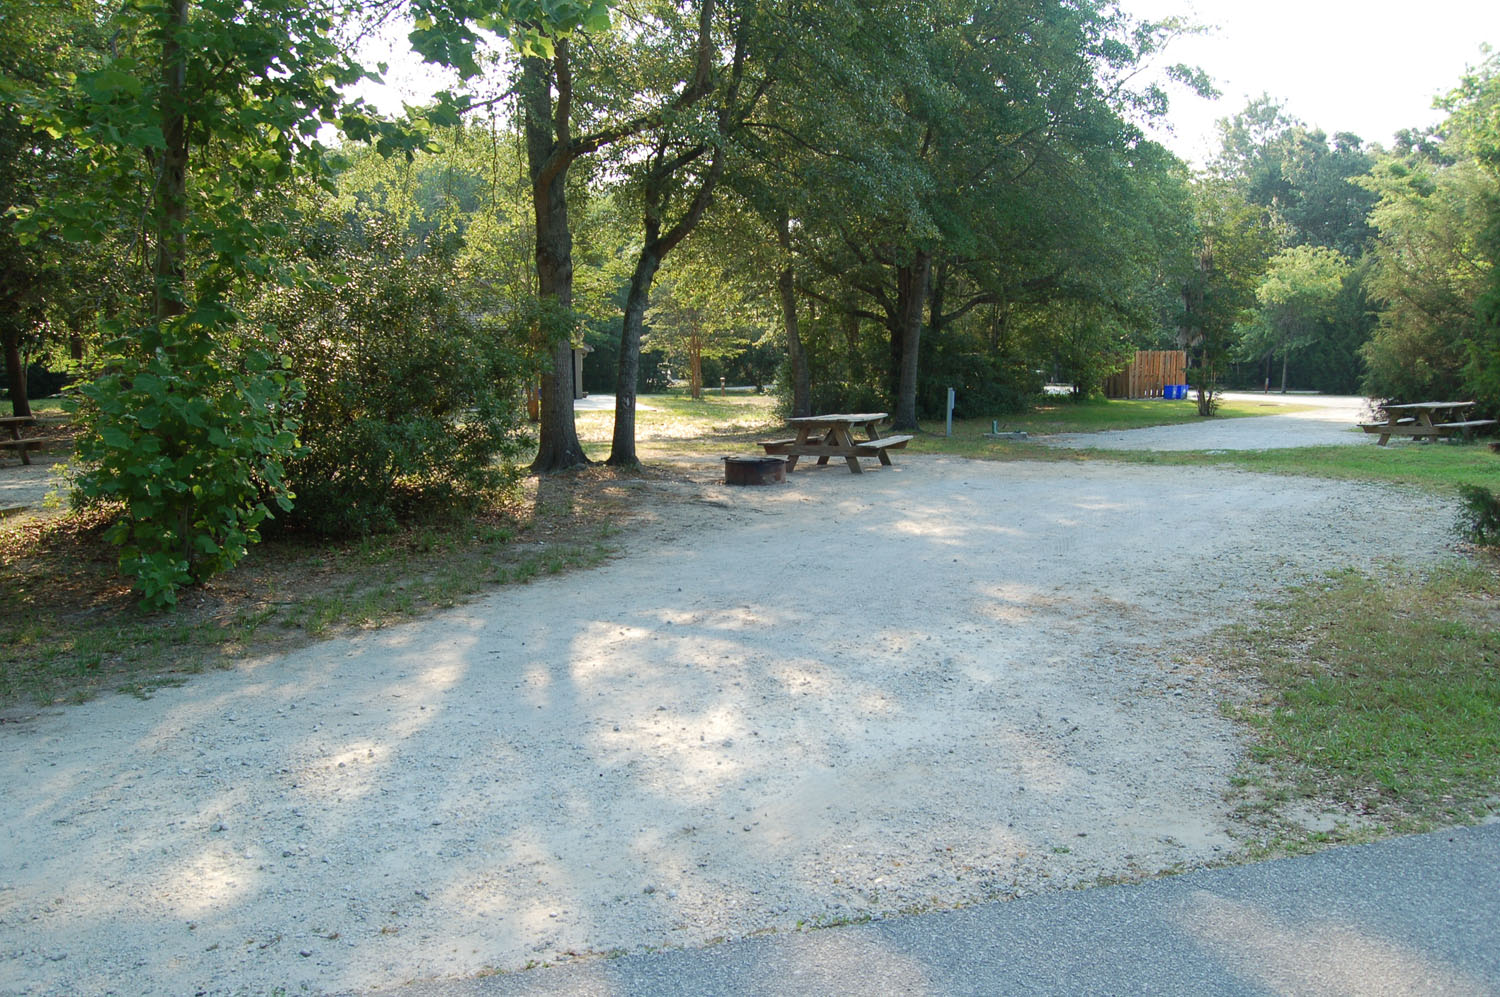 Image of campsite #70 at the Campground at James Island County Park